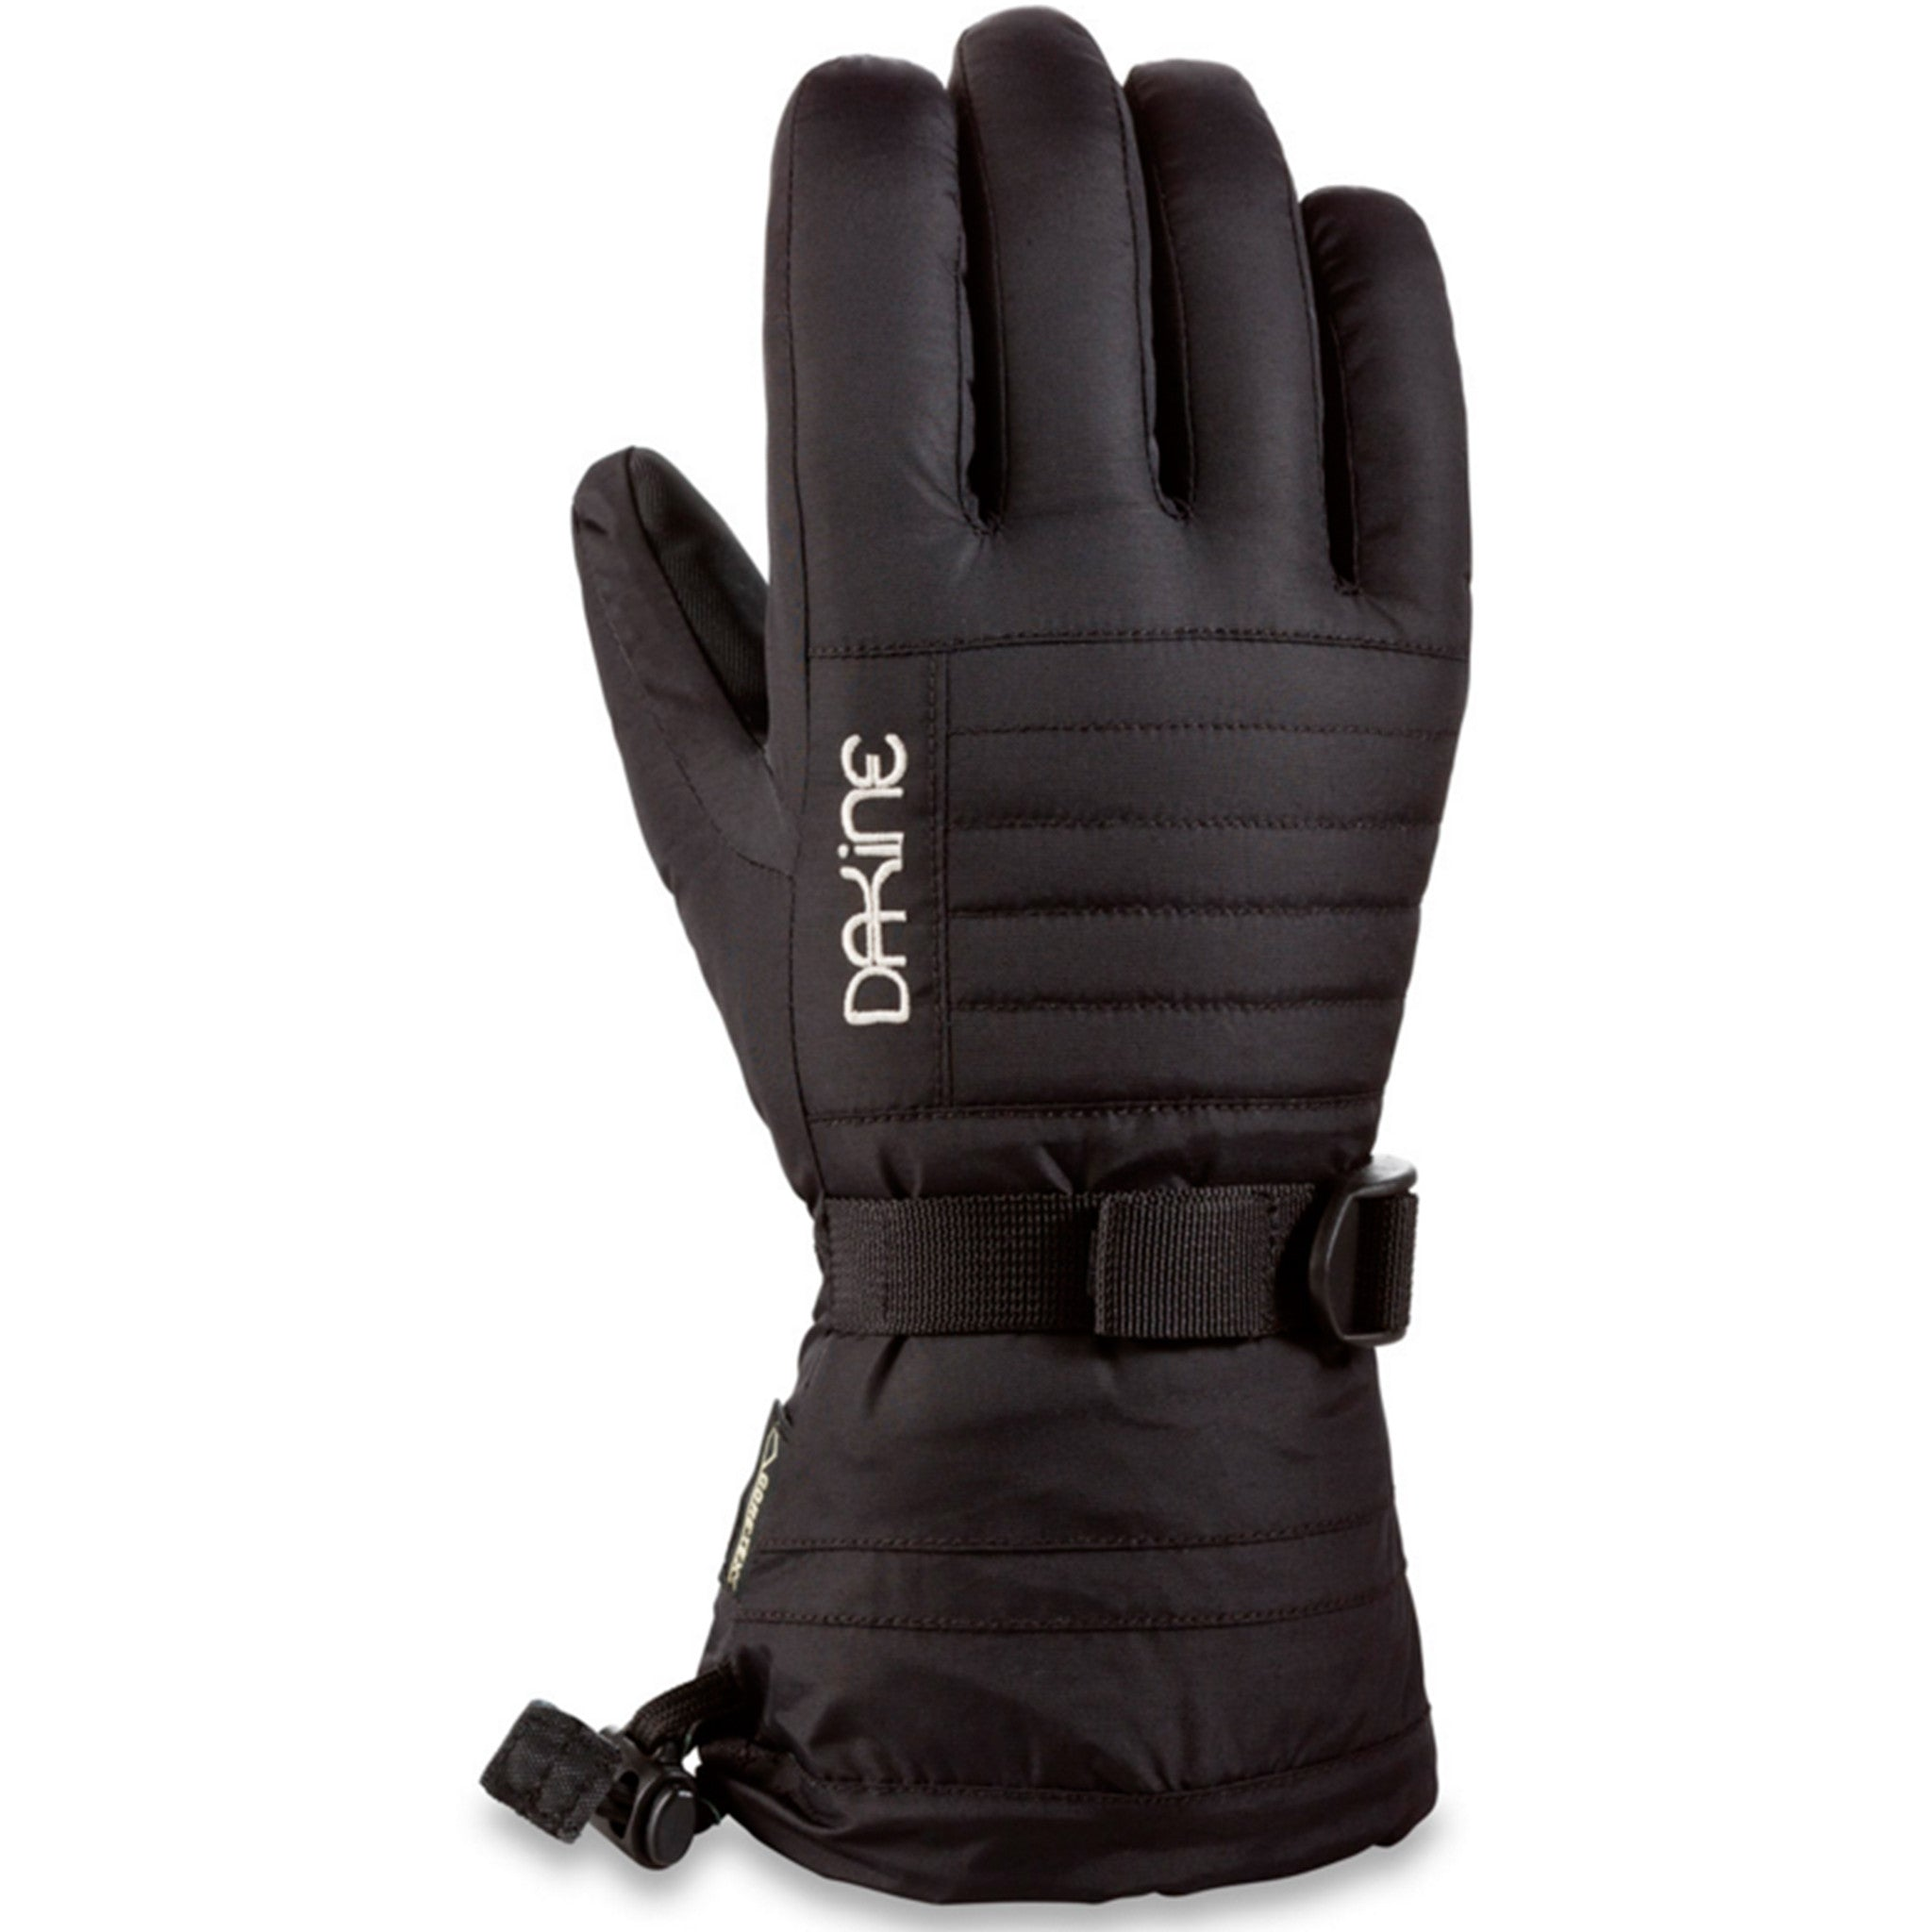 Omni Glove (wmns) - Black - Stoked Boardshop